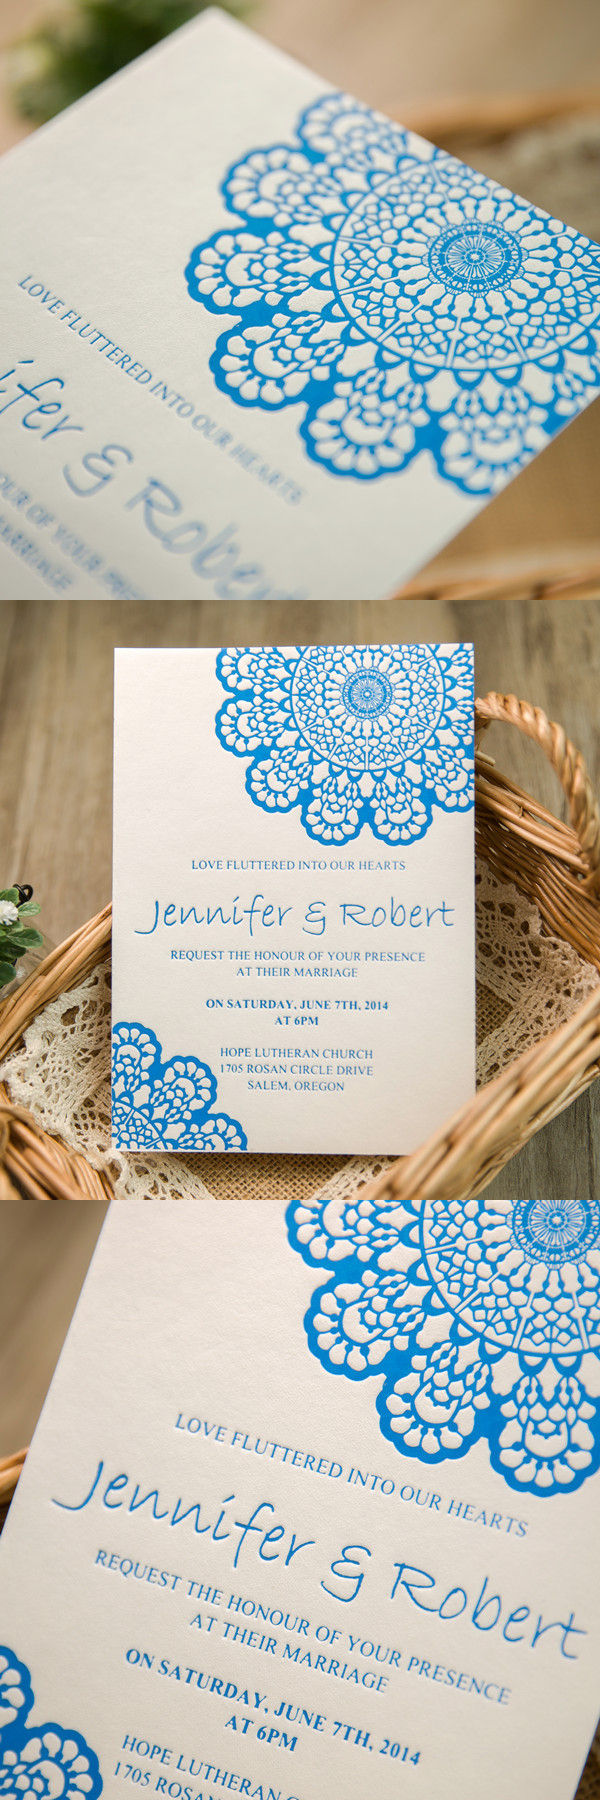 blue lace design letterpress wedding invitations